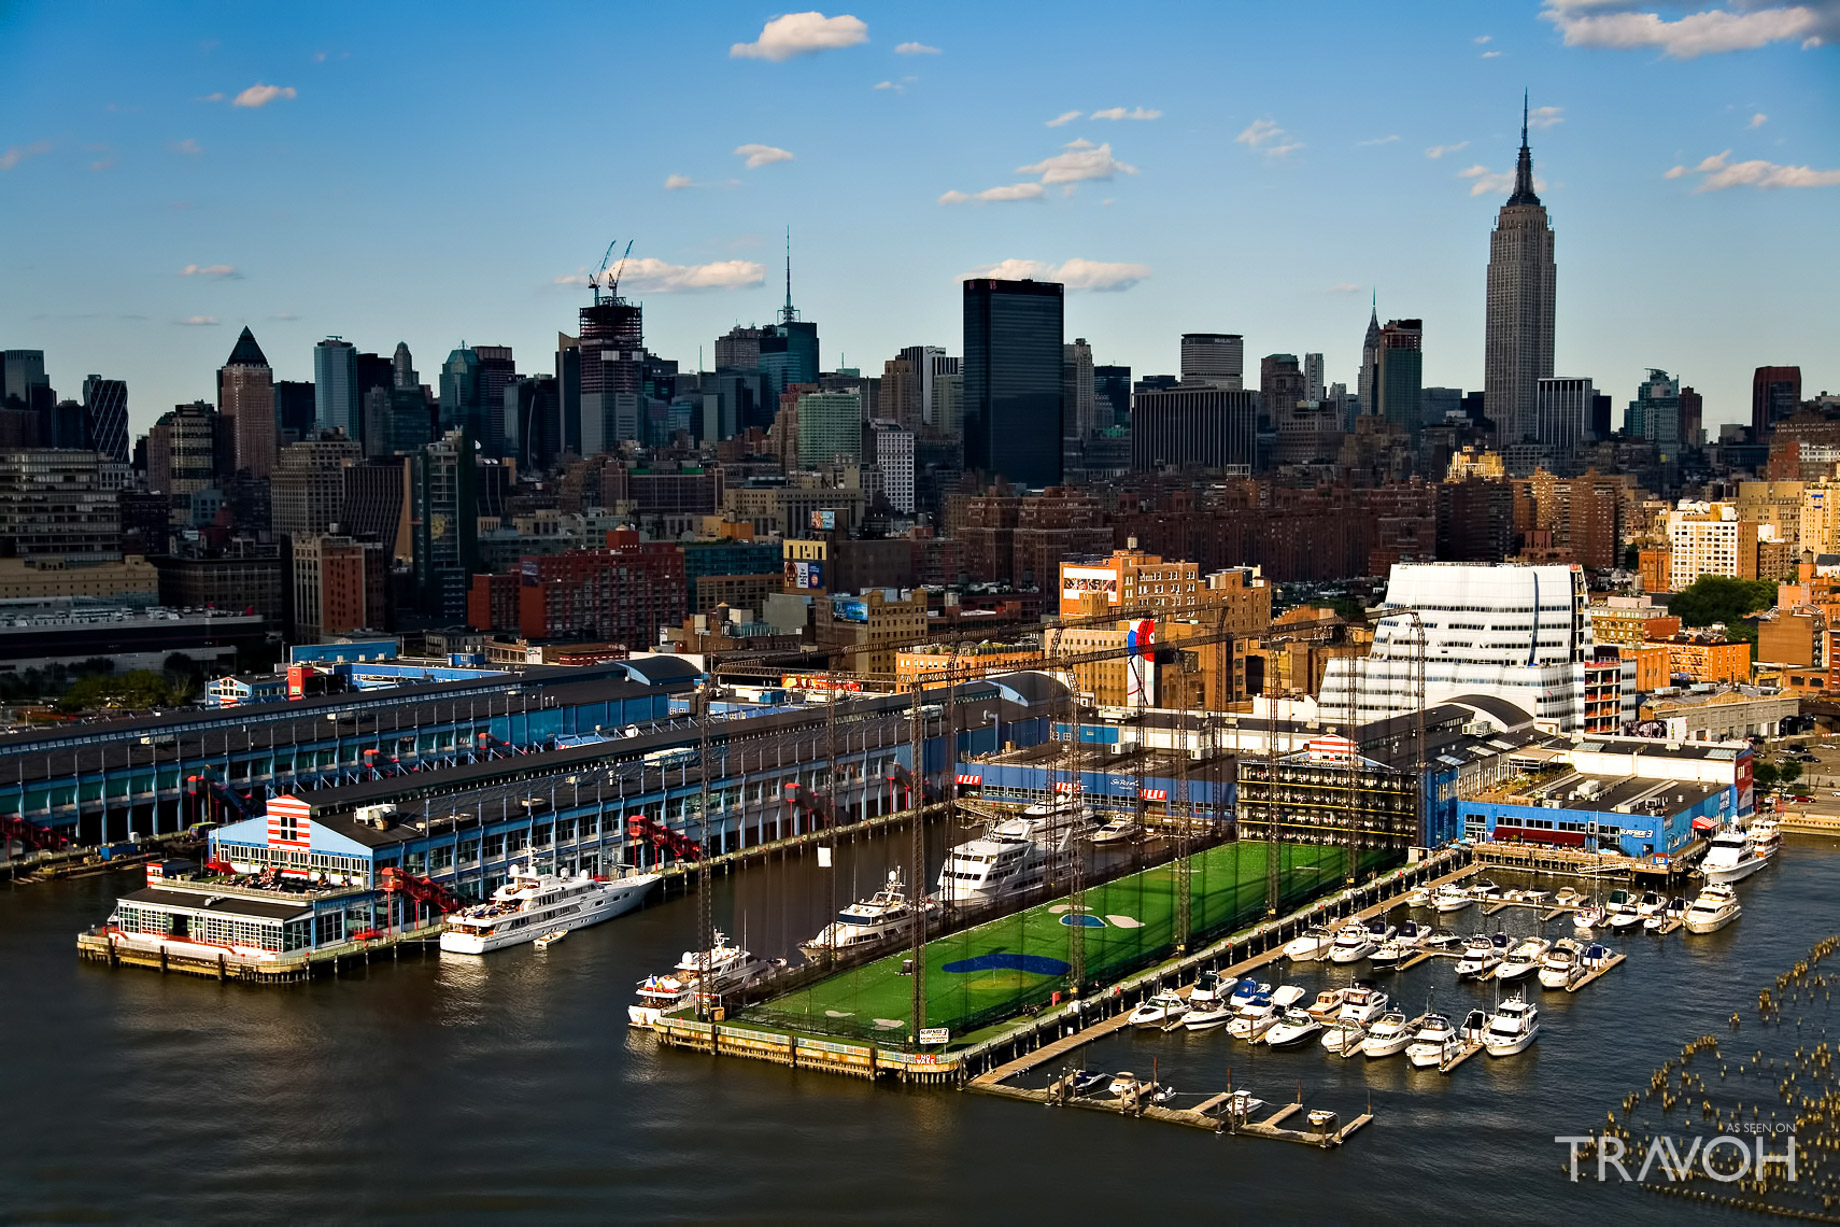 Check out Chelsea Piers - New York, NY, USA